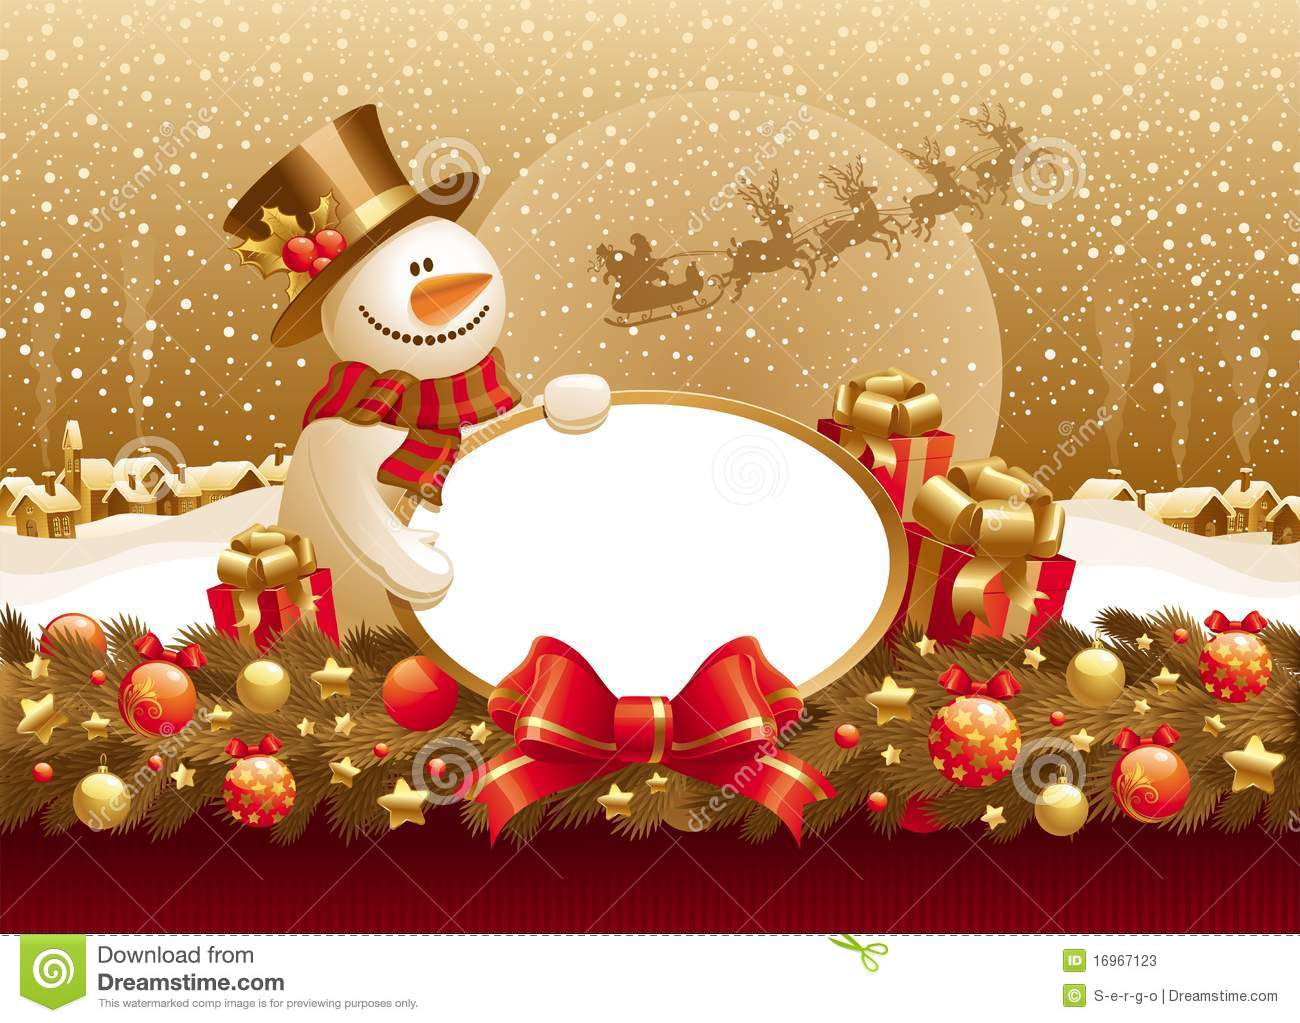 christmas illustration with snowman, gift & frame stock vector